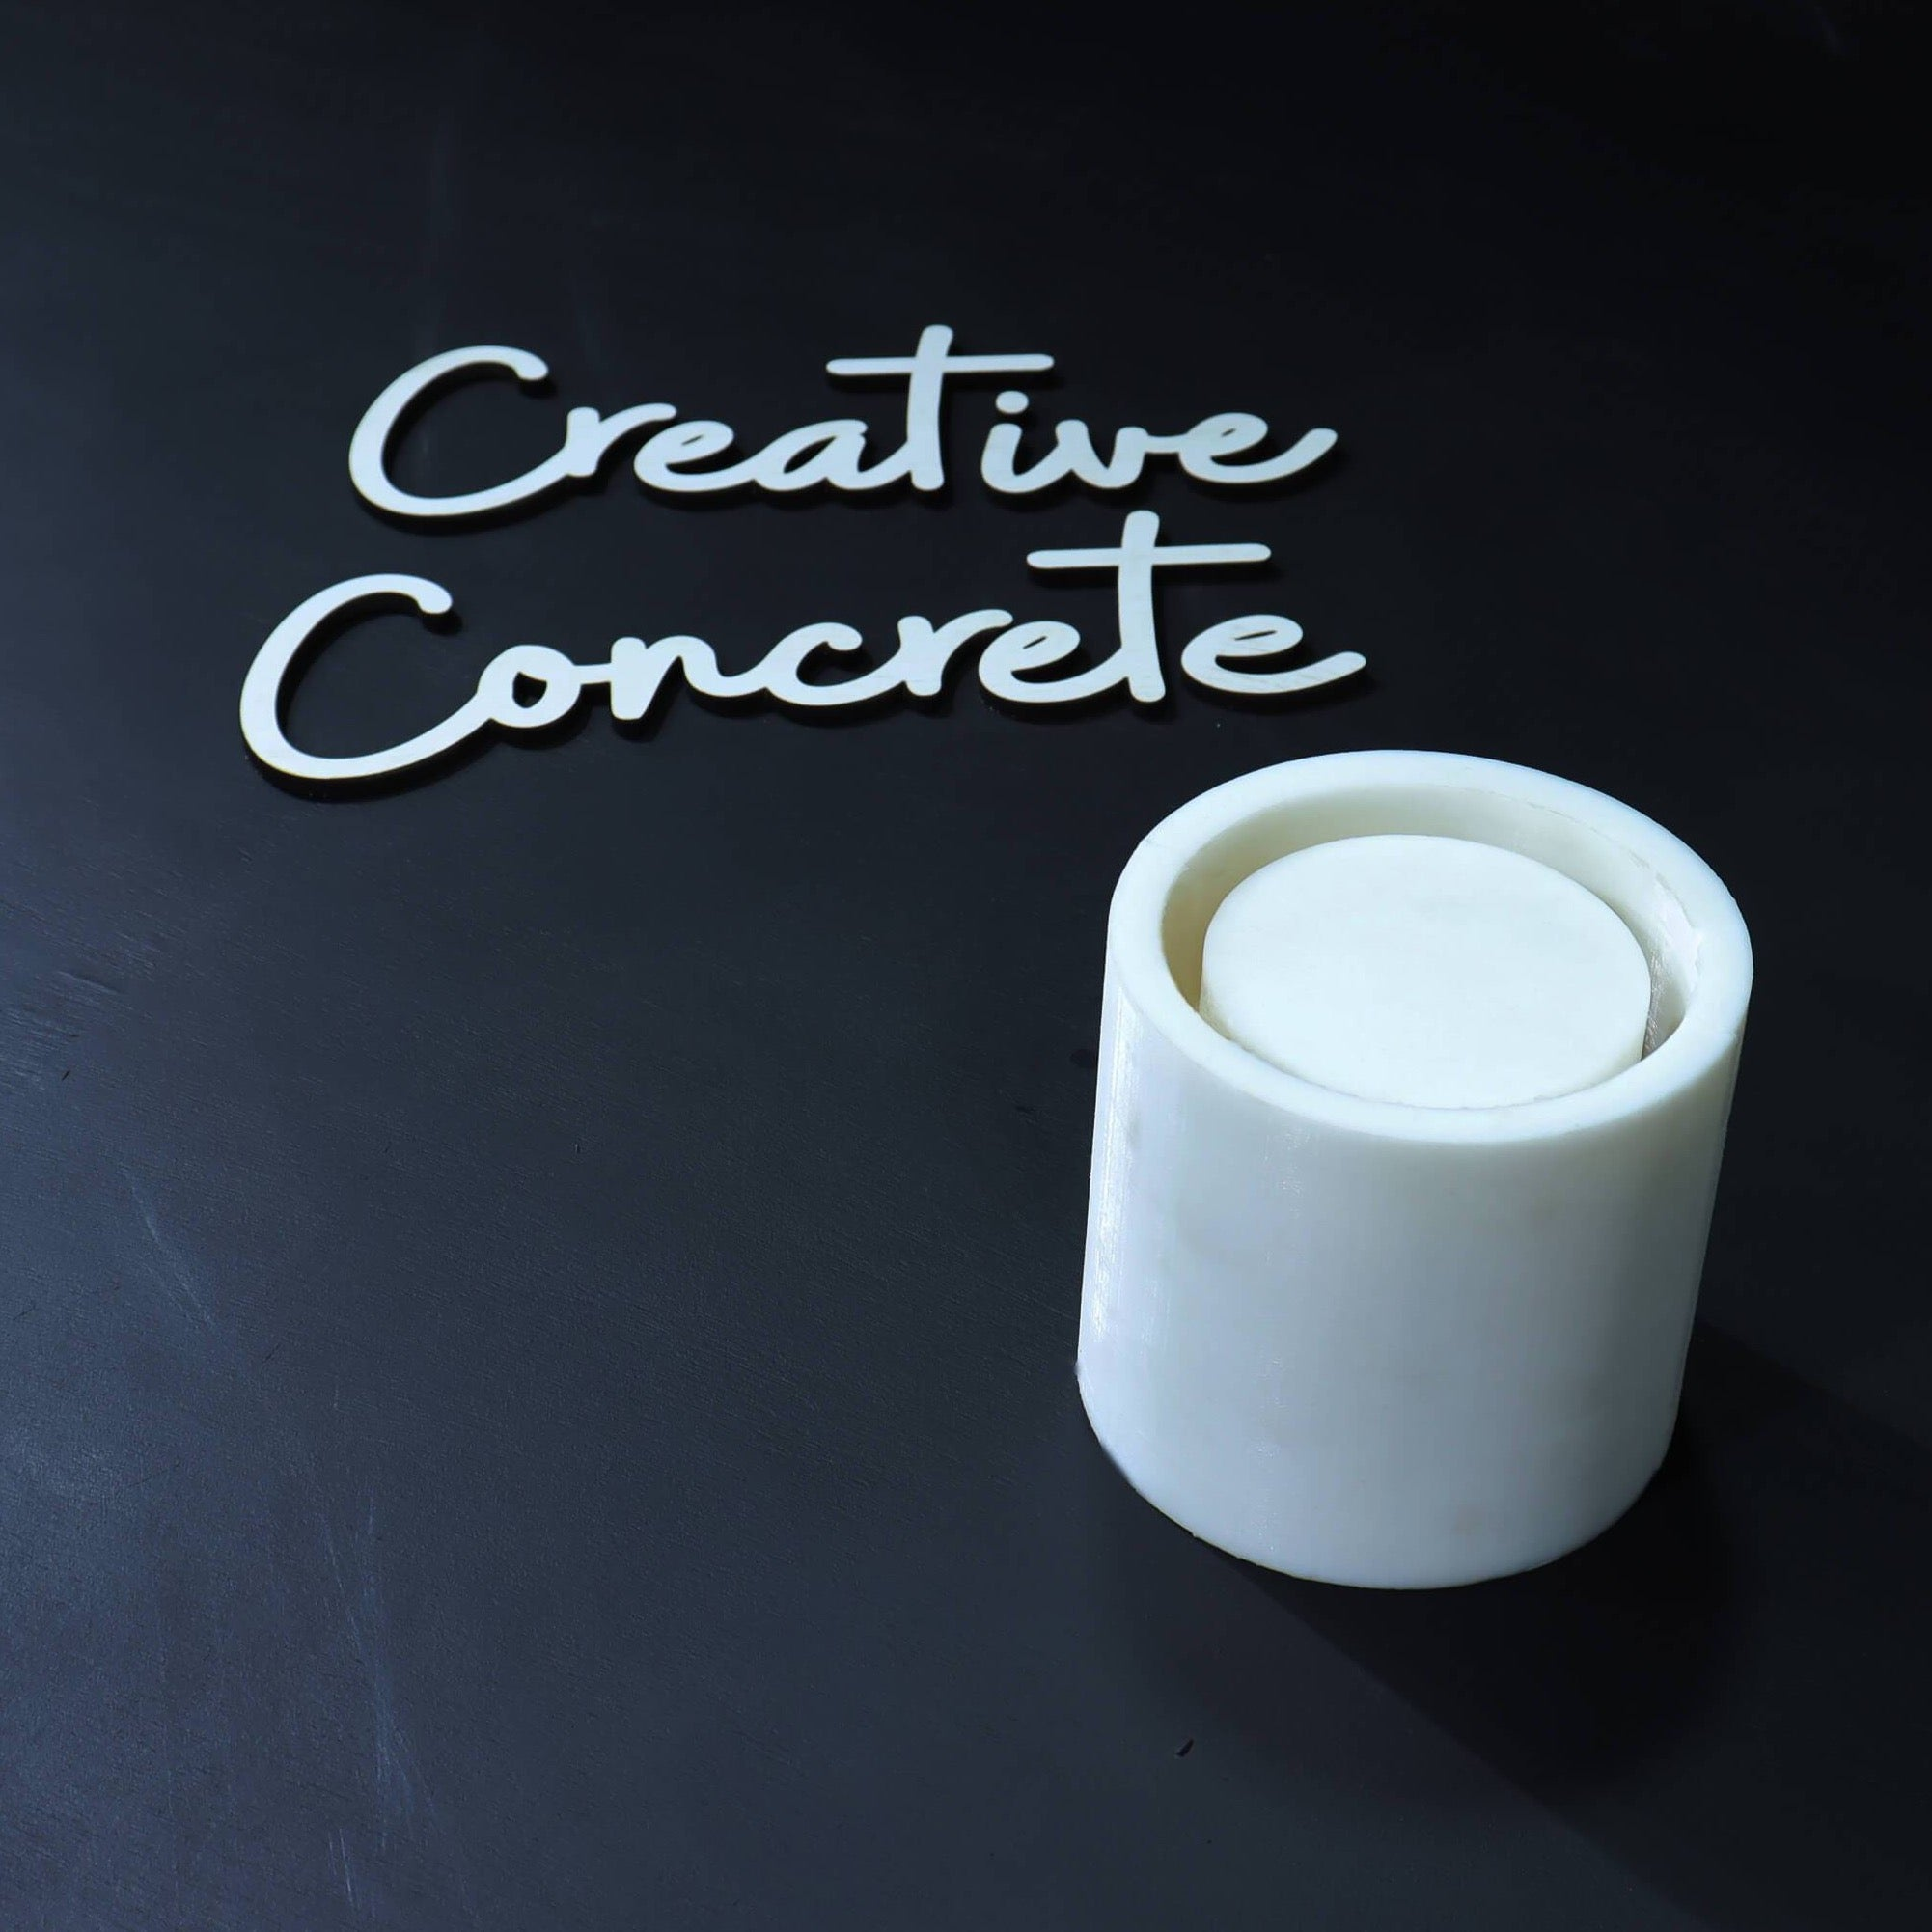 Creative Concrete's Mold for Planter or Candle vessel - CL-003-Eliteearth